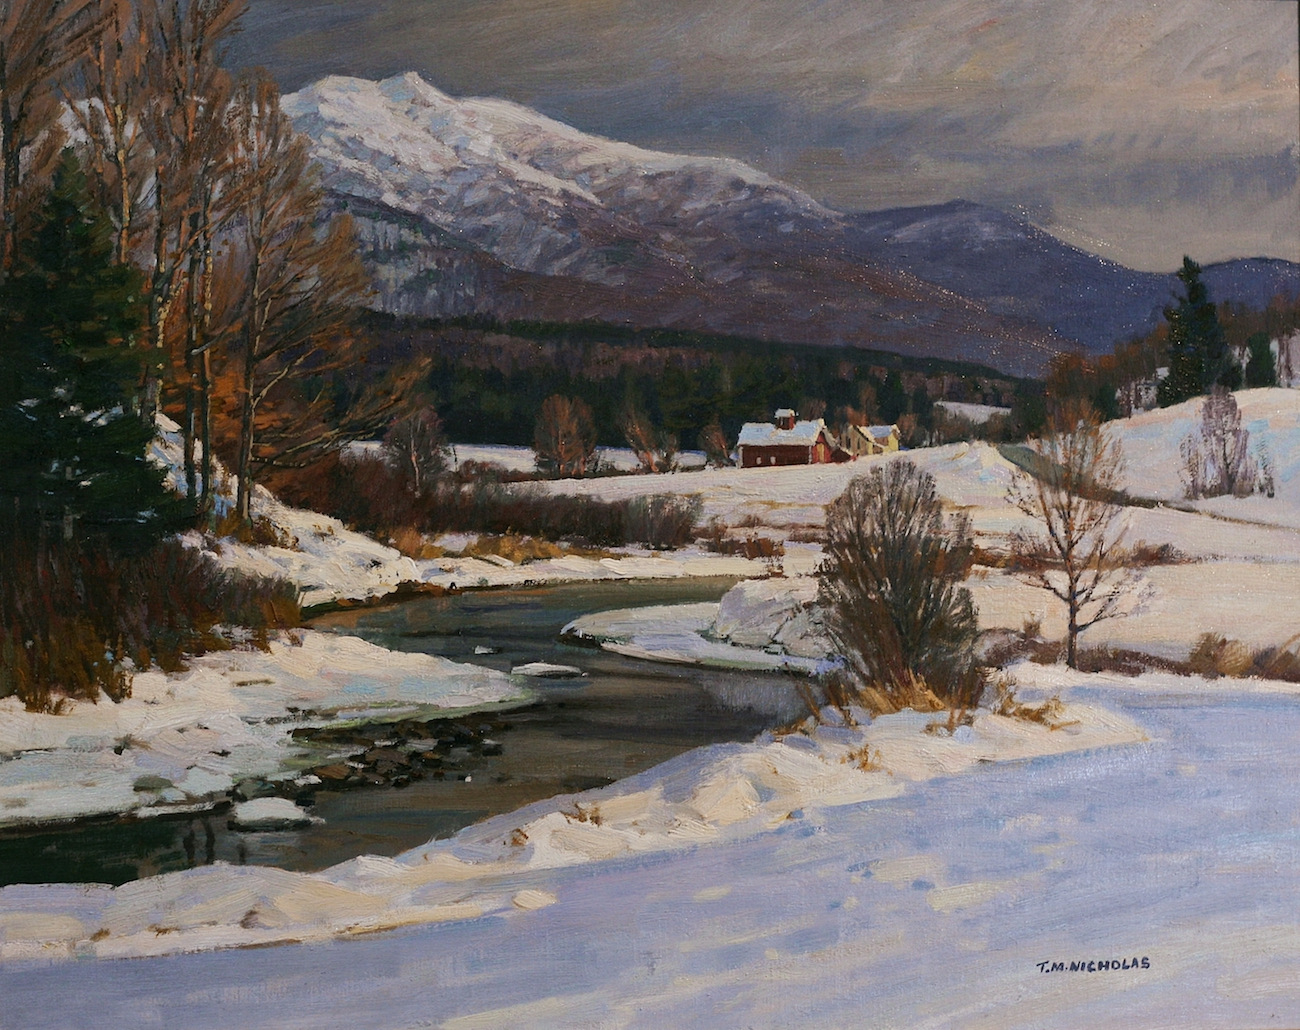 Last Light, Vermont by T.M. Nicholas